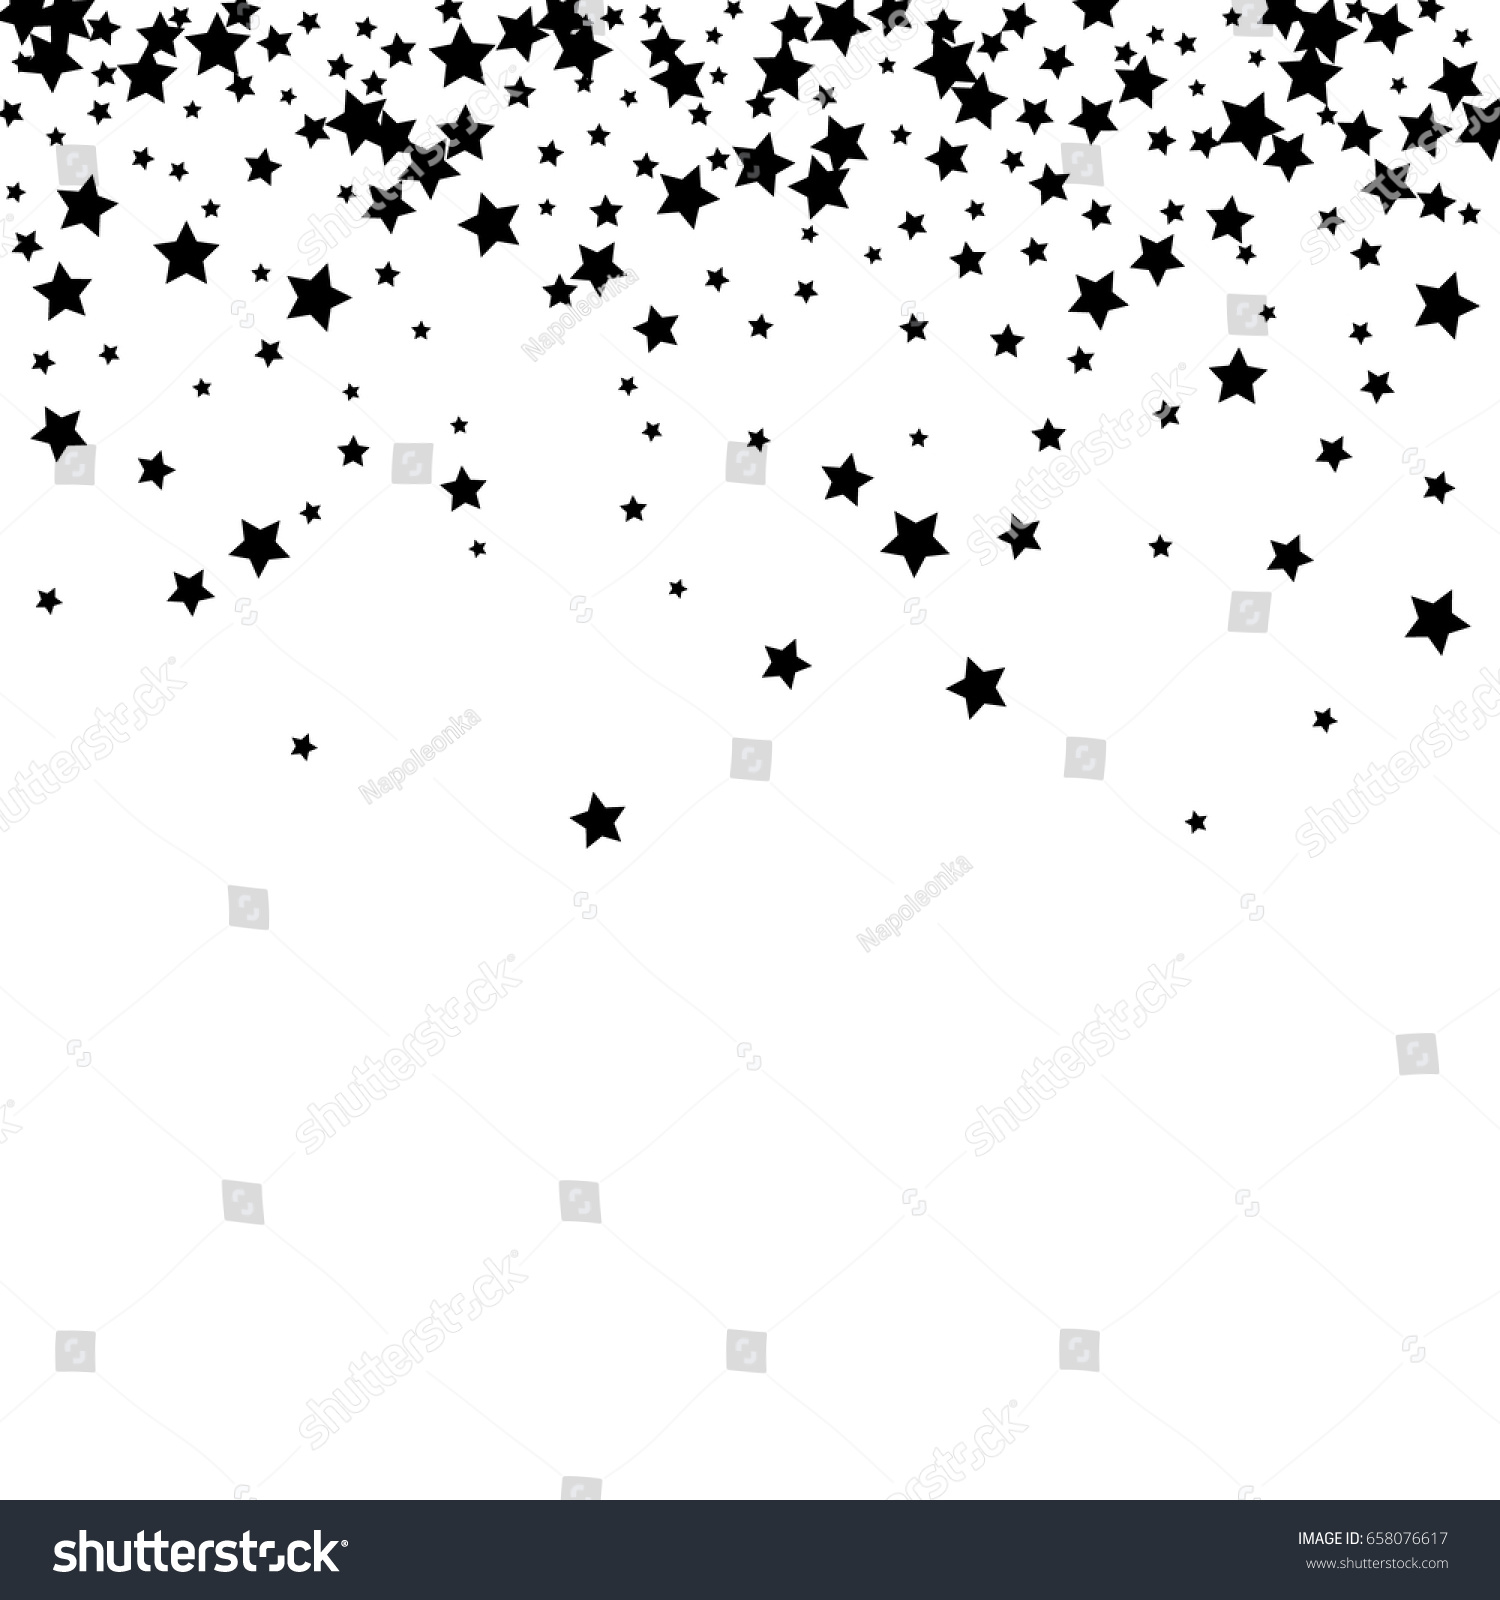 Black Stars On A White Background Vector Star Confetti Splash Isolated